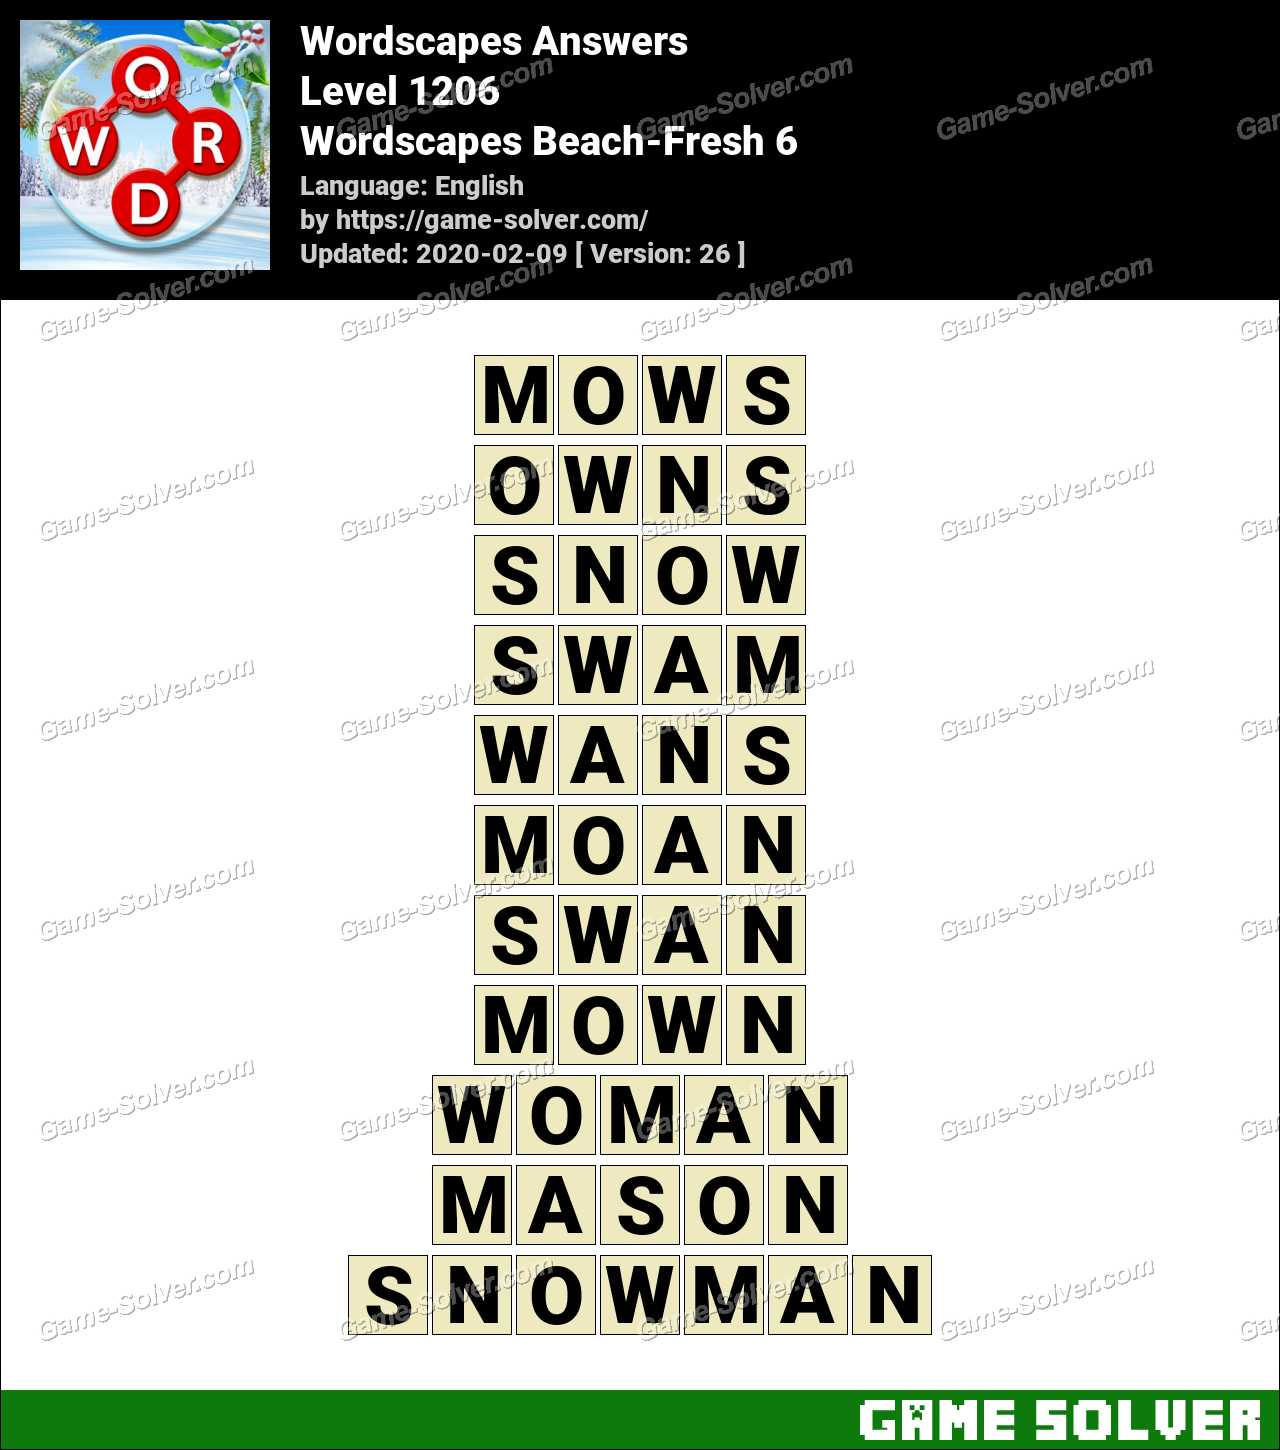 Wordscapes Beach-Fresh 6 Answers